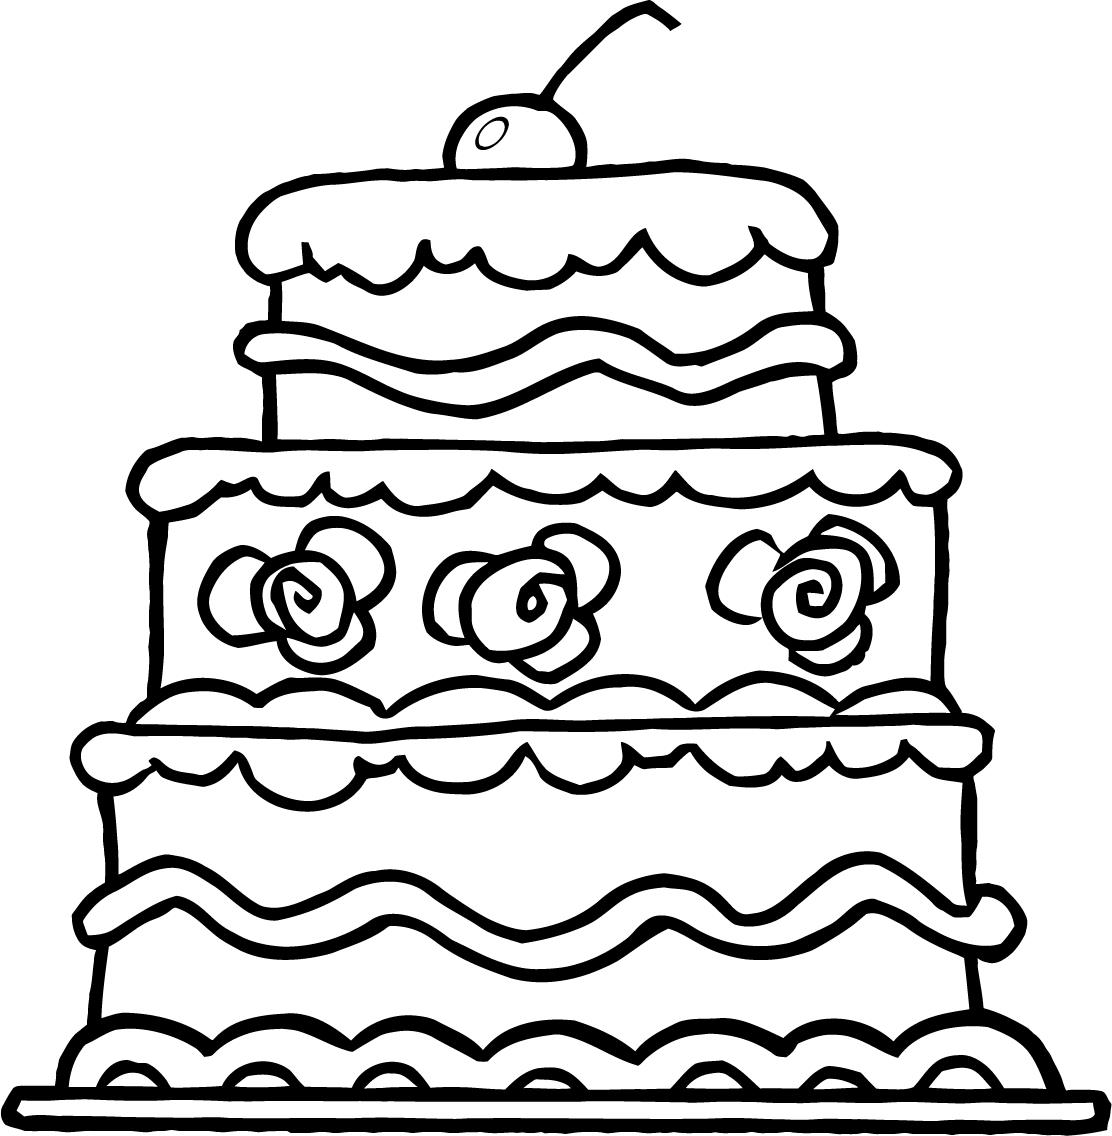 cake printables for coloring cake coloring pages to download and print for free coloring for printables cake